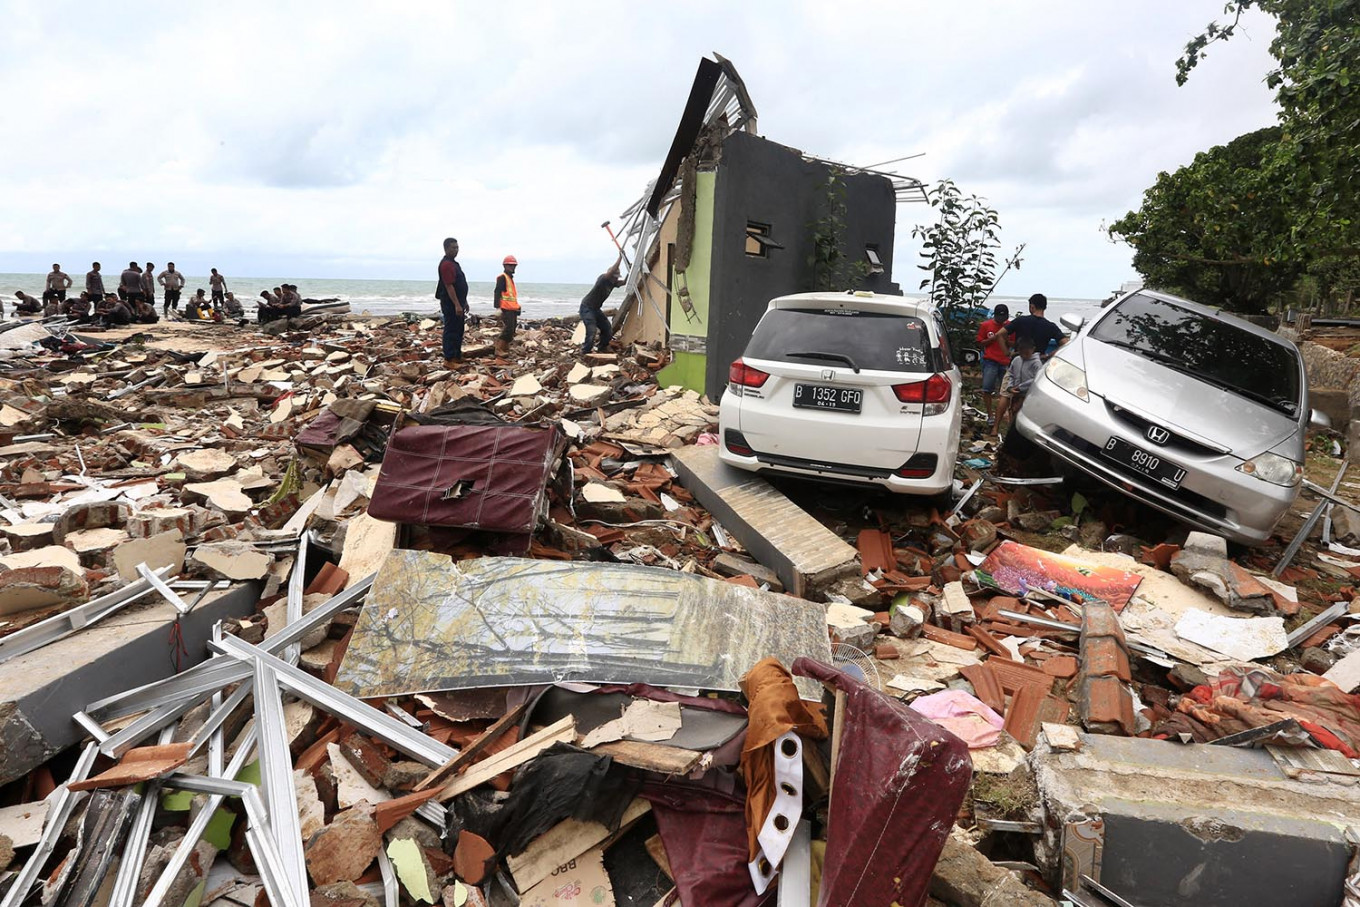 Valet parking: Search and rescue personnel search for victims of the Sunda Strait tsunami that might be trapped under the rubble of Stephanie Villa complex at Carita Beach in Pandeglang, Banten, on Monday, December 24, 2018. JP/Dhoni Setiawan